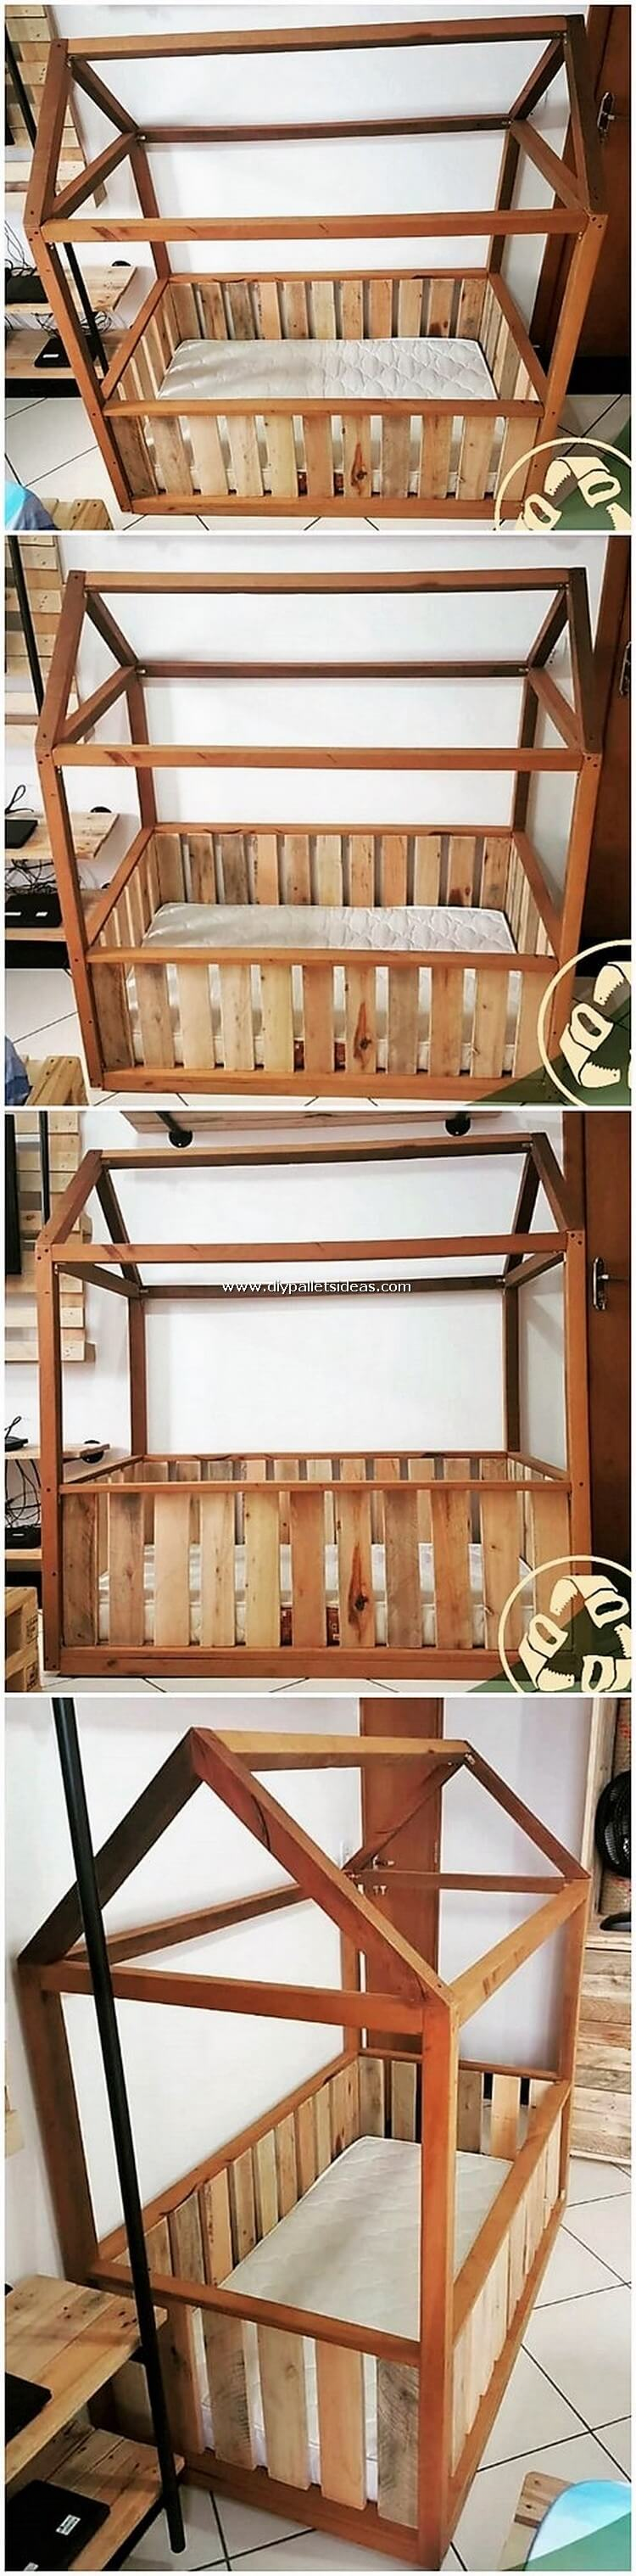 Wooden Pallet Bunk Bed